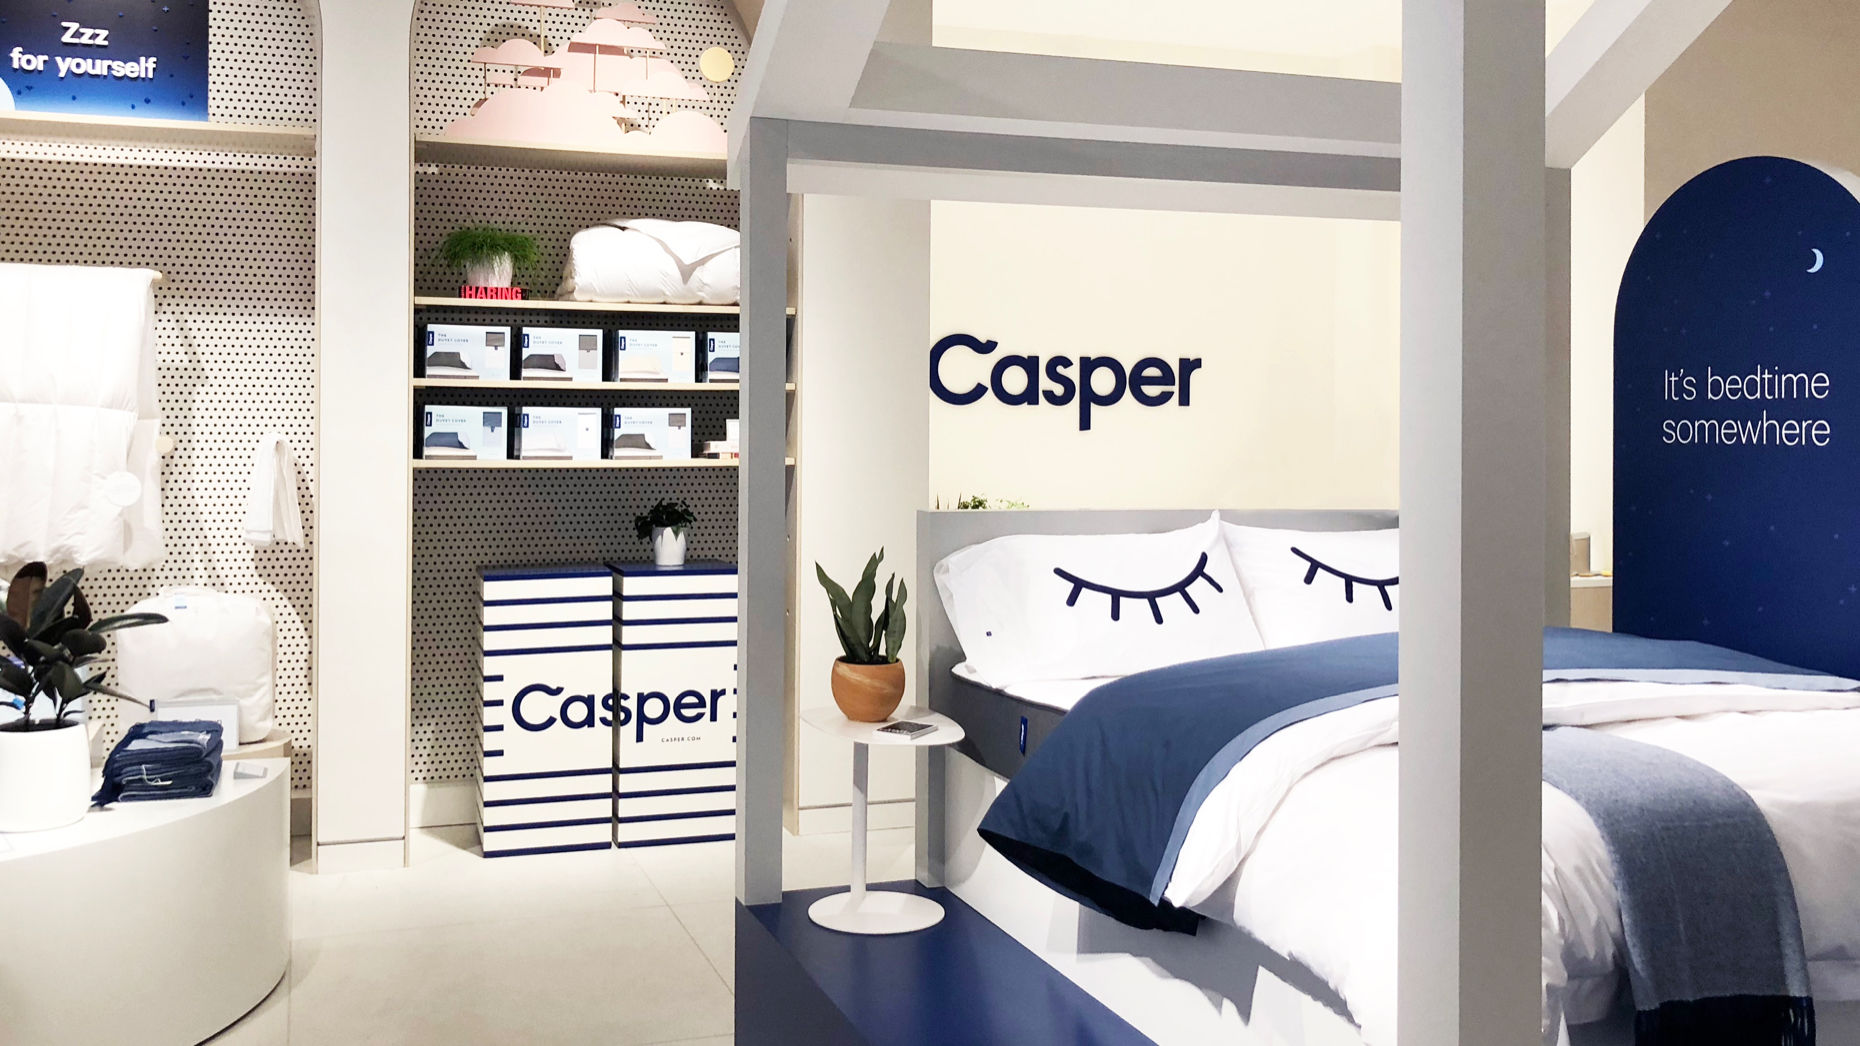 A Casper retail store. Photo by Casper